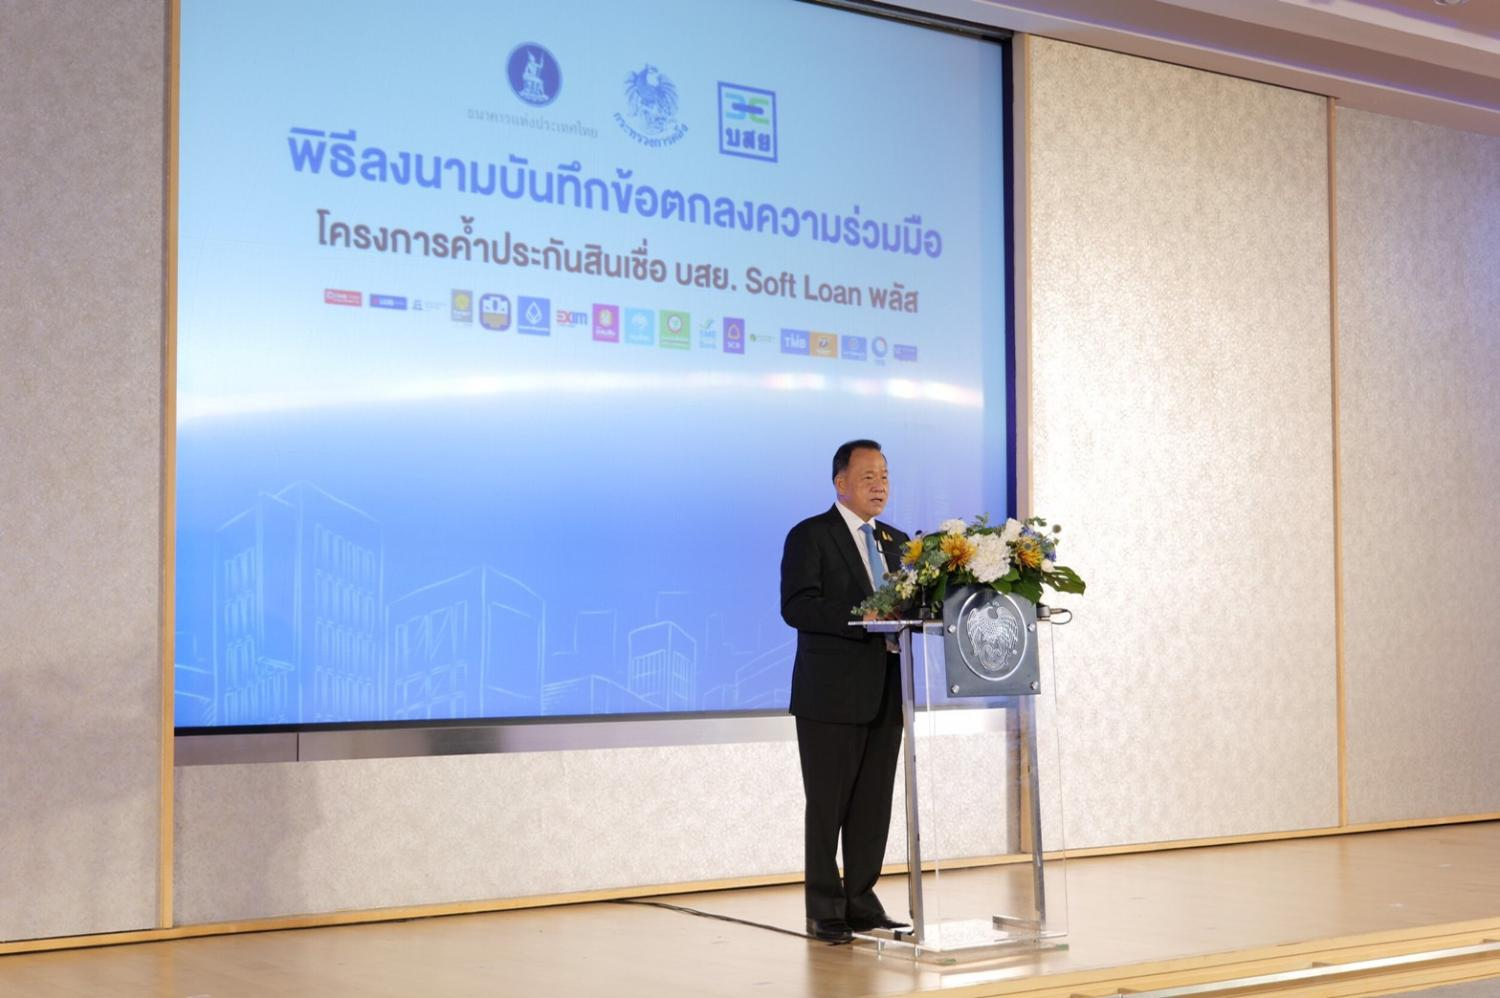 Mr Santi says TCG can start providing loan guarantees for SMEs upon receiving the 60-billion-baht credit line.